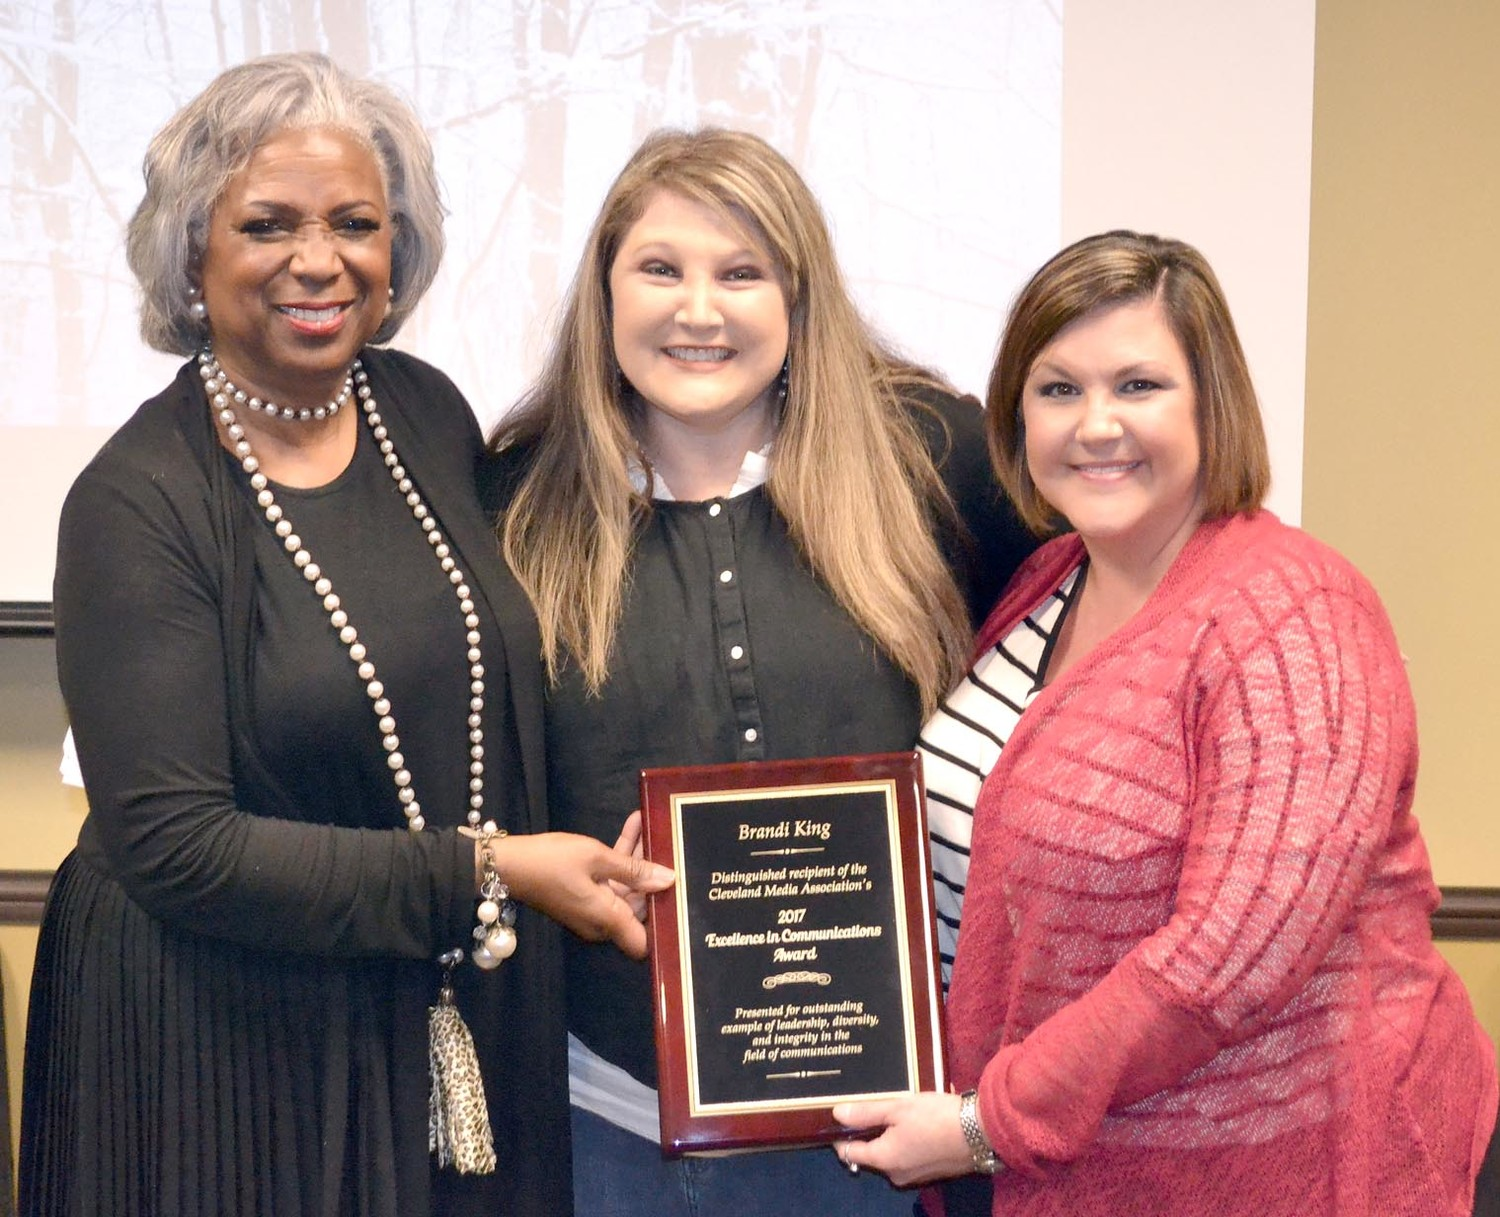 Toni Miles and Meagan Jolley present Brandi King the CMA Excellence in Communications award. Pictured from left to right, Toni Miles, President of CMA; Meagan Jolley, Vice President of CMA; and Brandi King, award recipient.